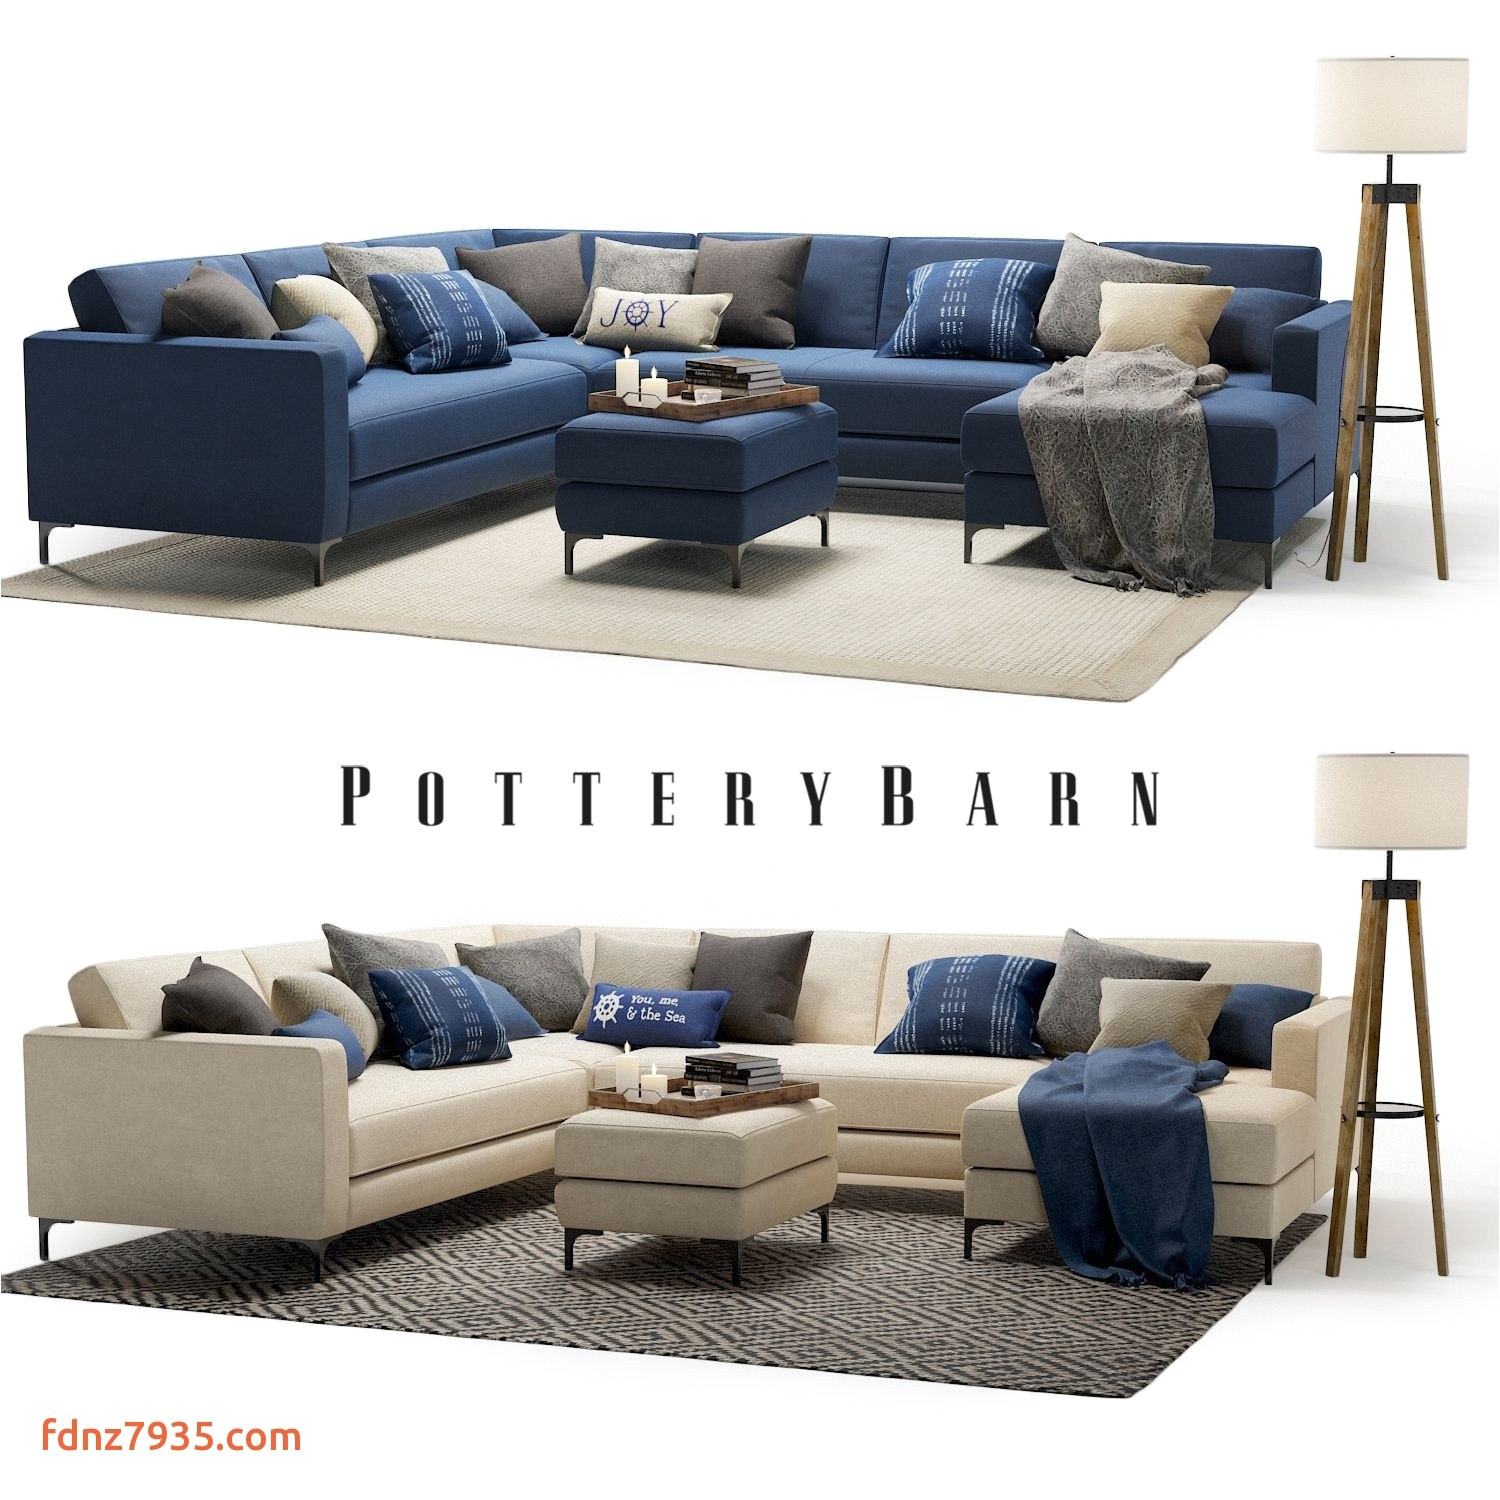 3d model pottery barn jake sectional sofa with miles tripod floor lamp